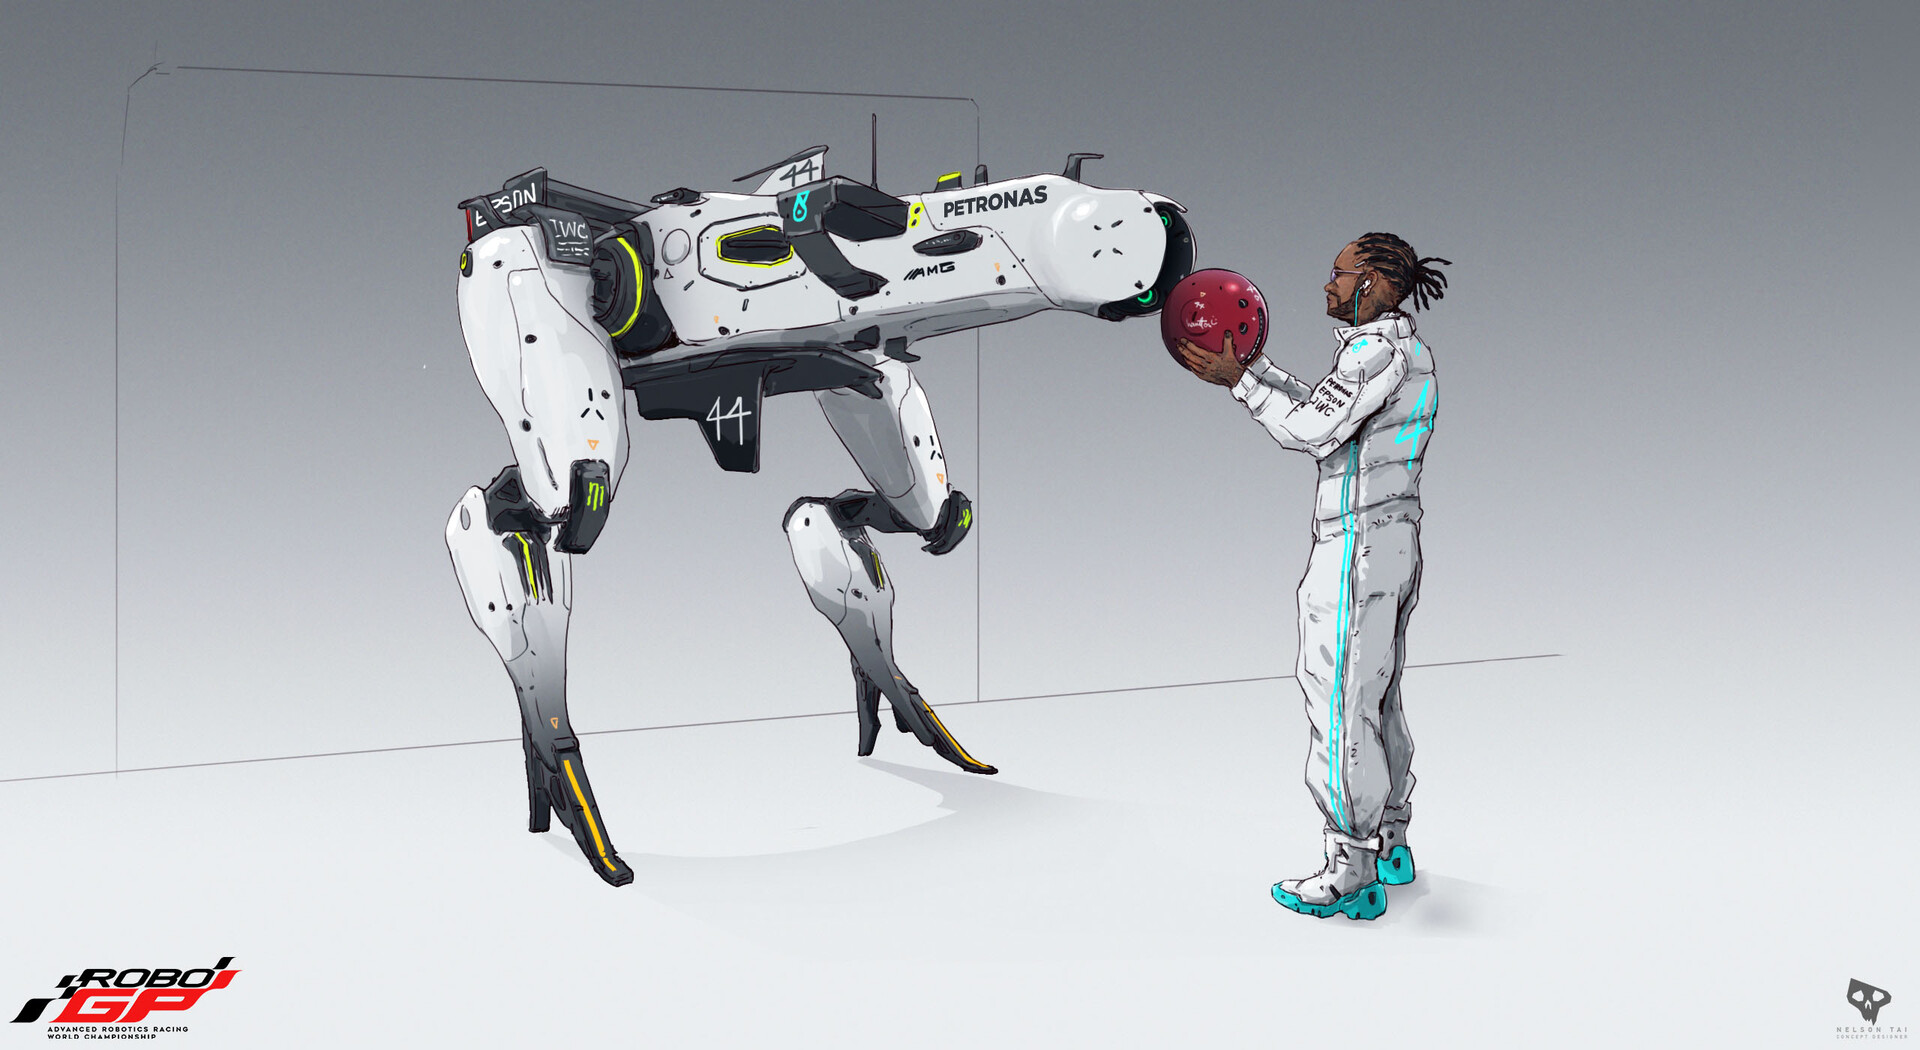 Lewis updates LEWY's data system and attaches the 'Race Sphere' back into LEWY before the race!